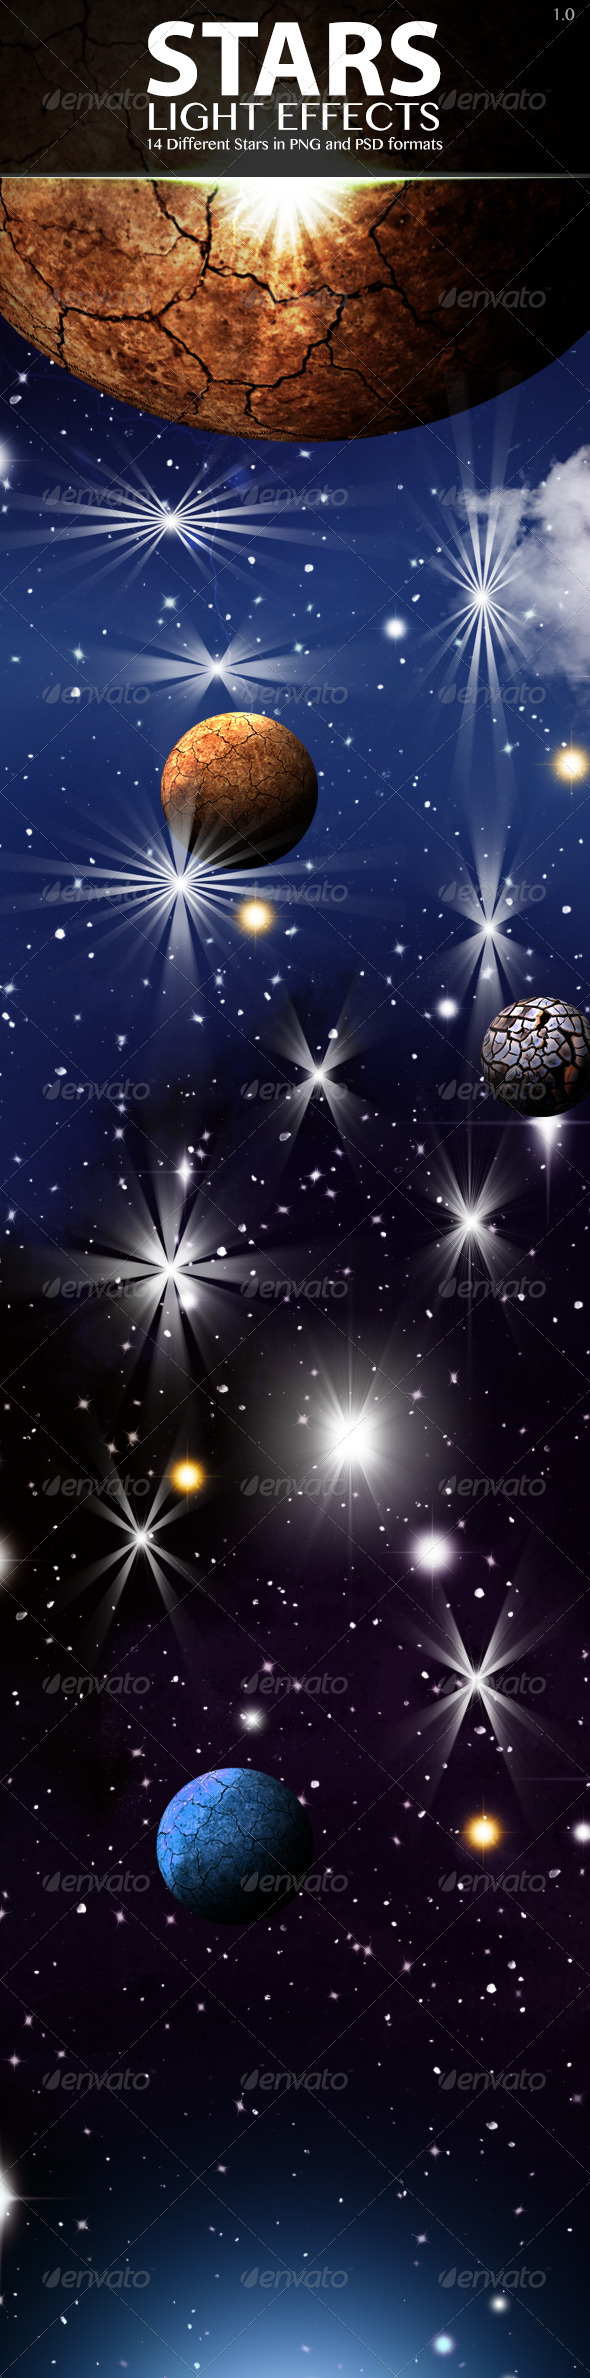 Stars Light Effects 1.0 - Decorative Graphics